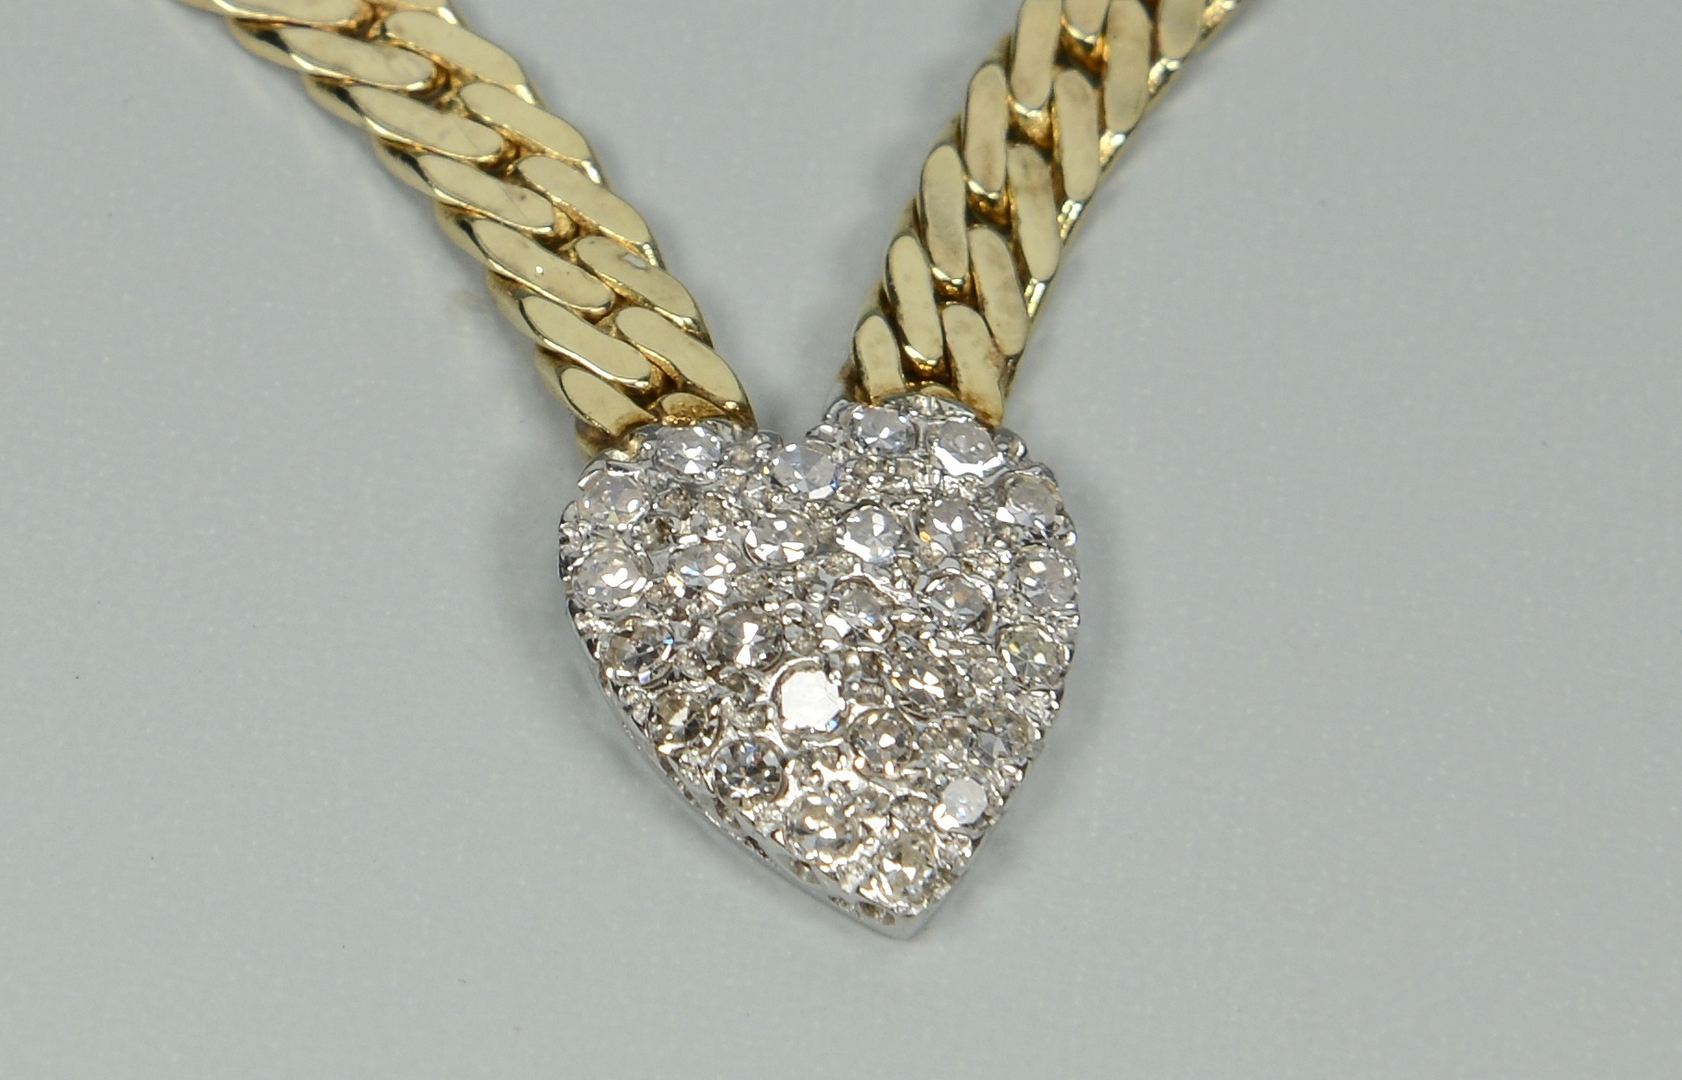 Lot 3088057: 14k Diamond Heart Necklace